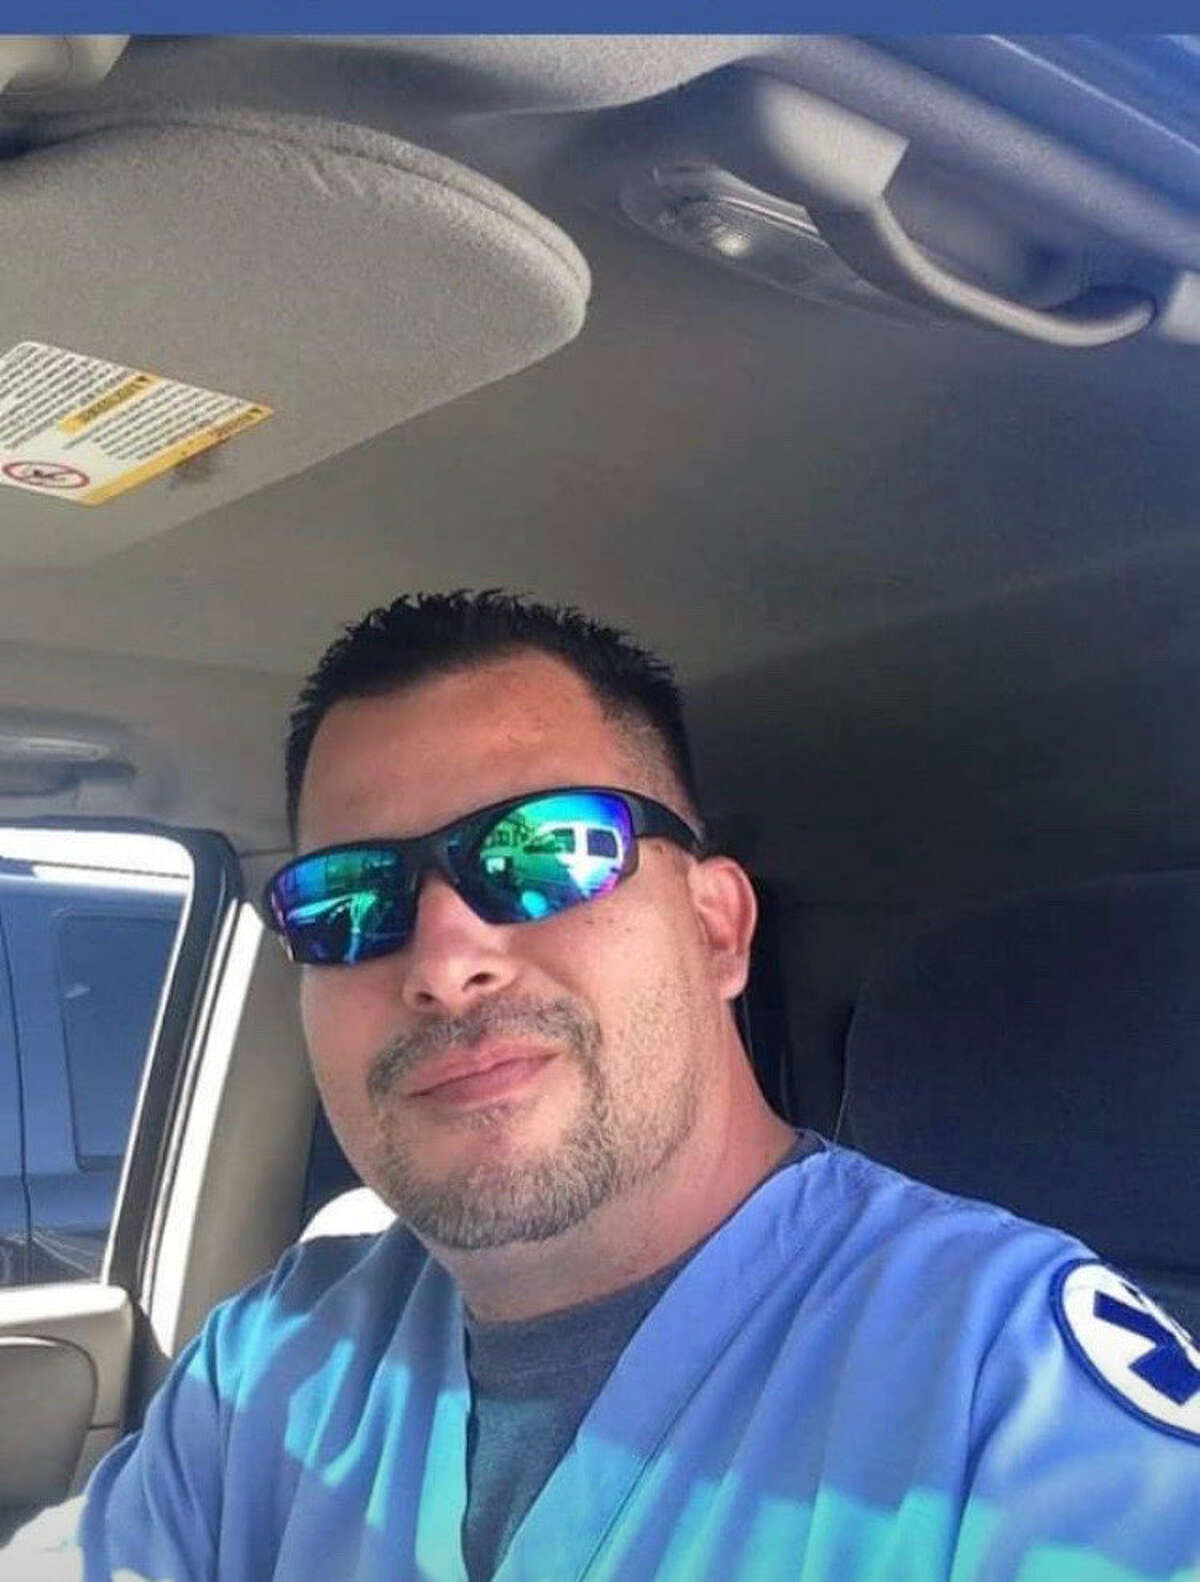 A 1992 nursing school graduate, husband and small business owner, Laredoan Luis Peter Decker is leaving Laredo to join other medical health professionals in New Jersey on Saturday to fight the COVID-19 pandemic.